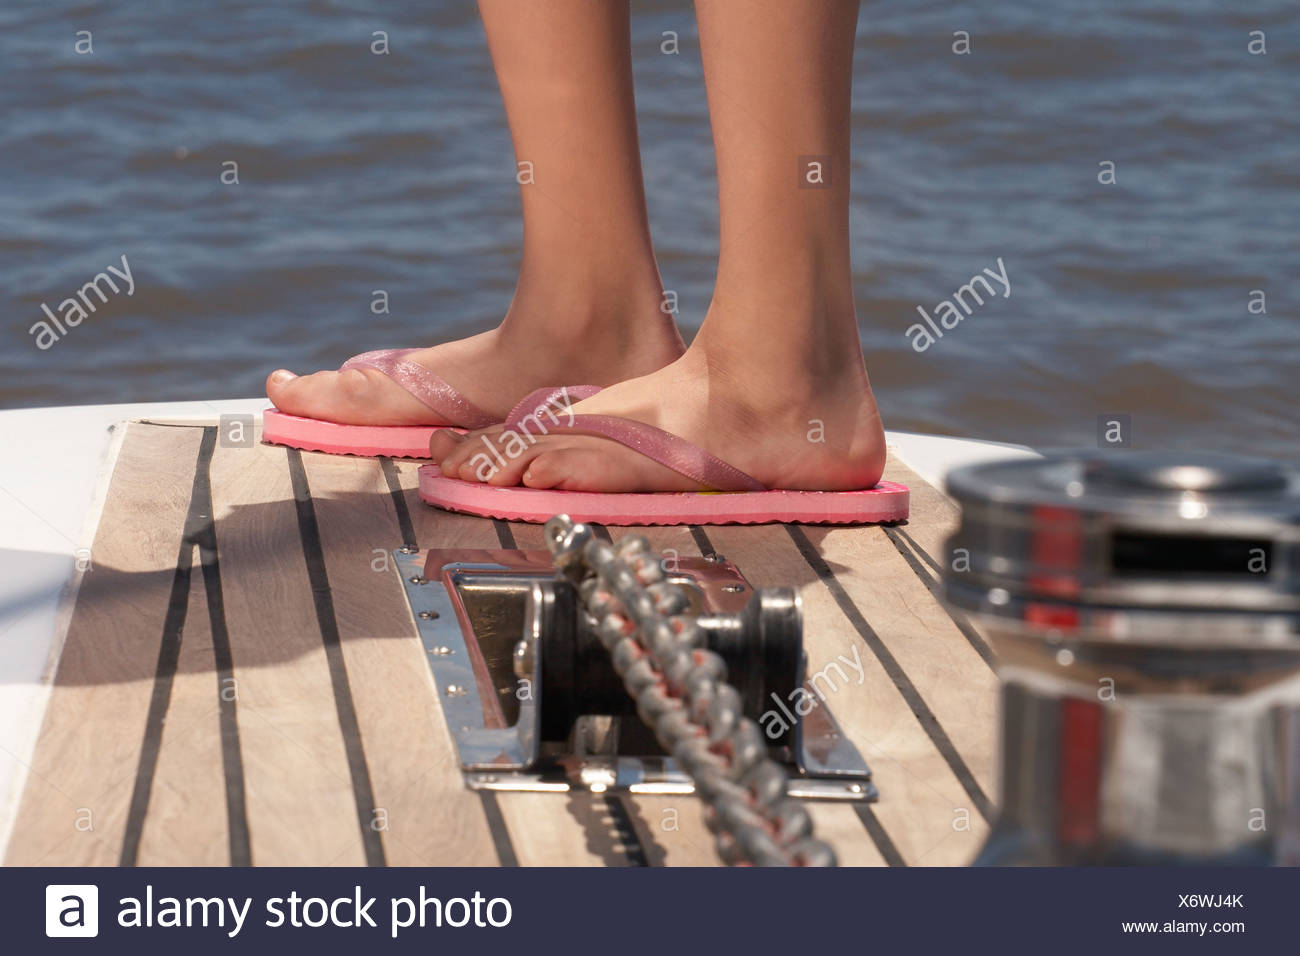 Detail of girl's feet wearing flip flops - Stock Image